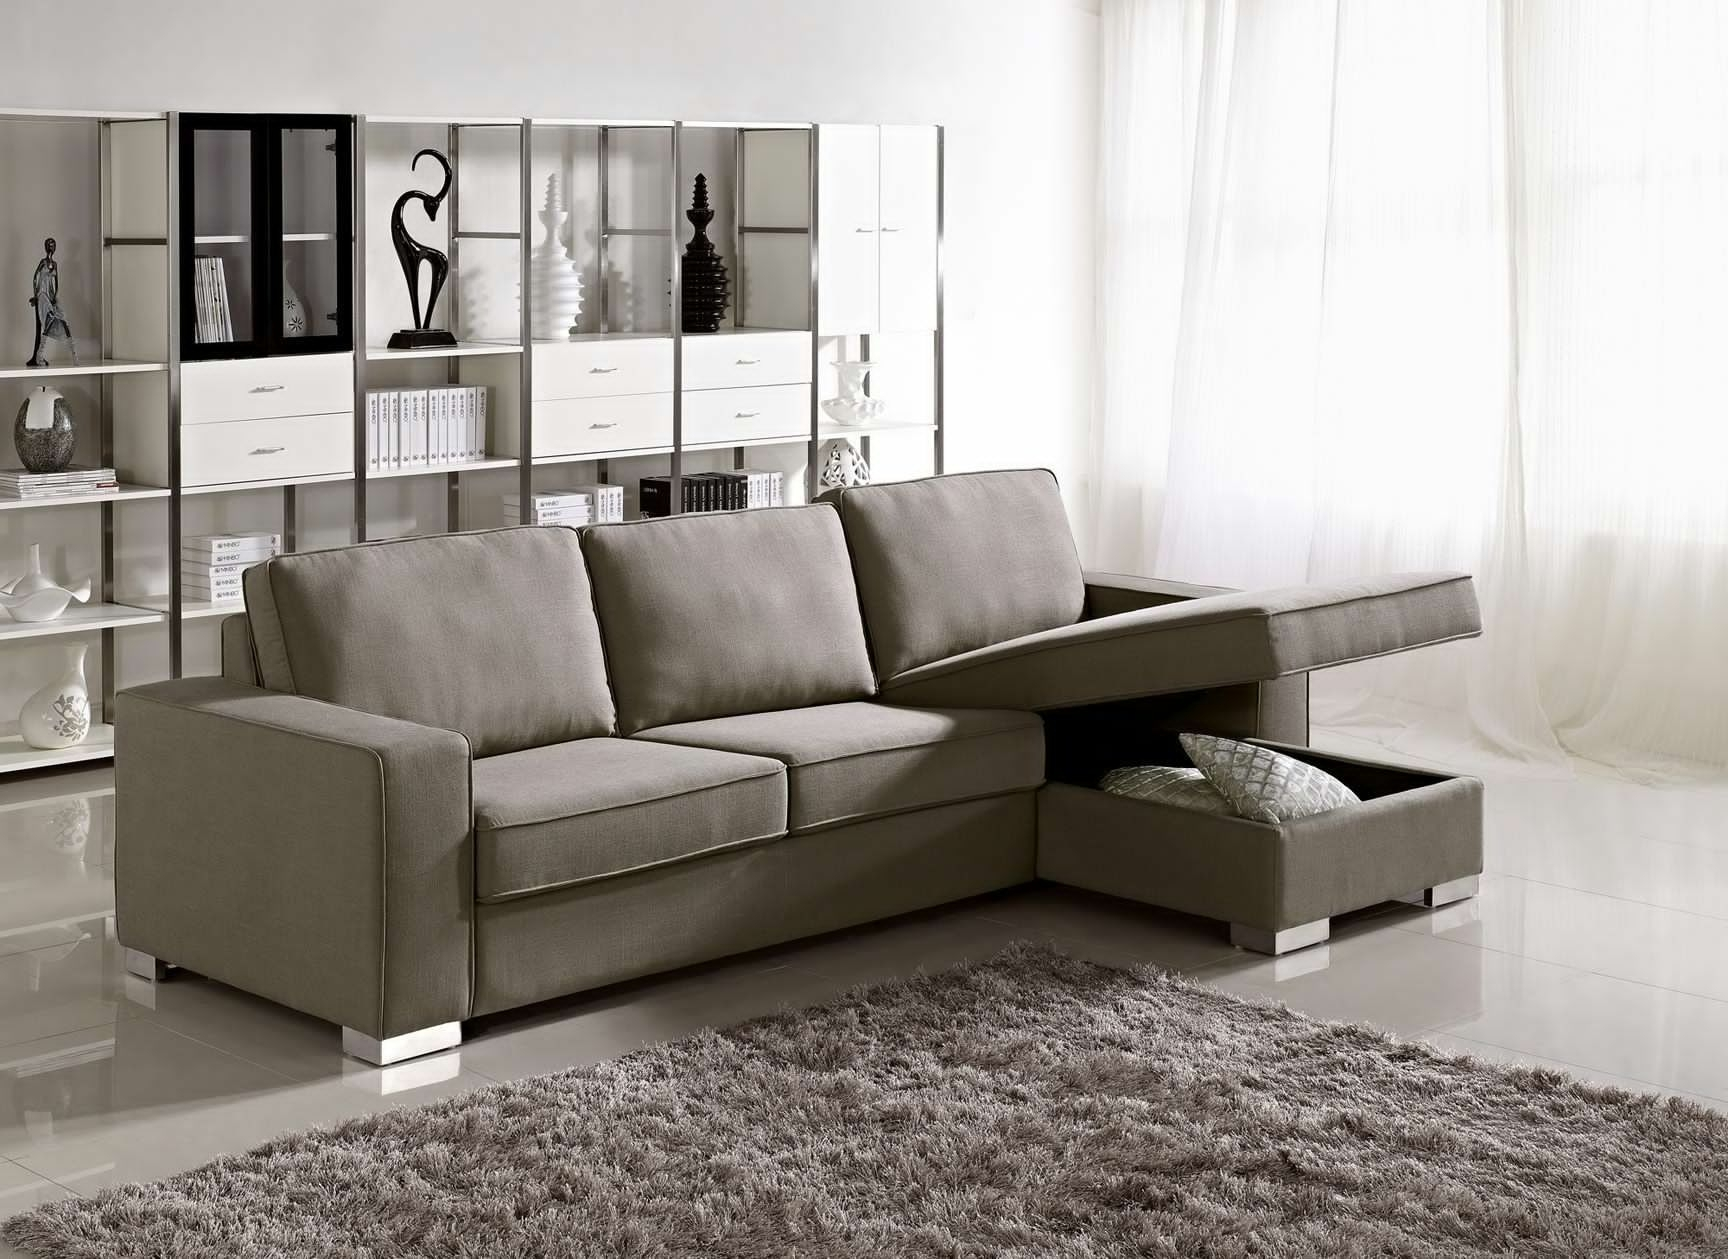 Stunning Small Apartment Sofas Contemporary Iotaustralasiaco With Apartment Size Sofas And Sectionals (Image 14 of 15)